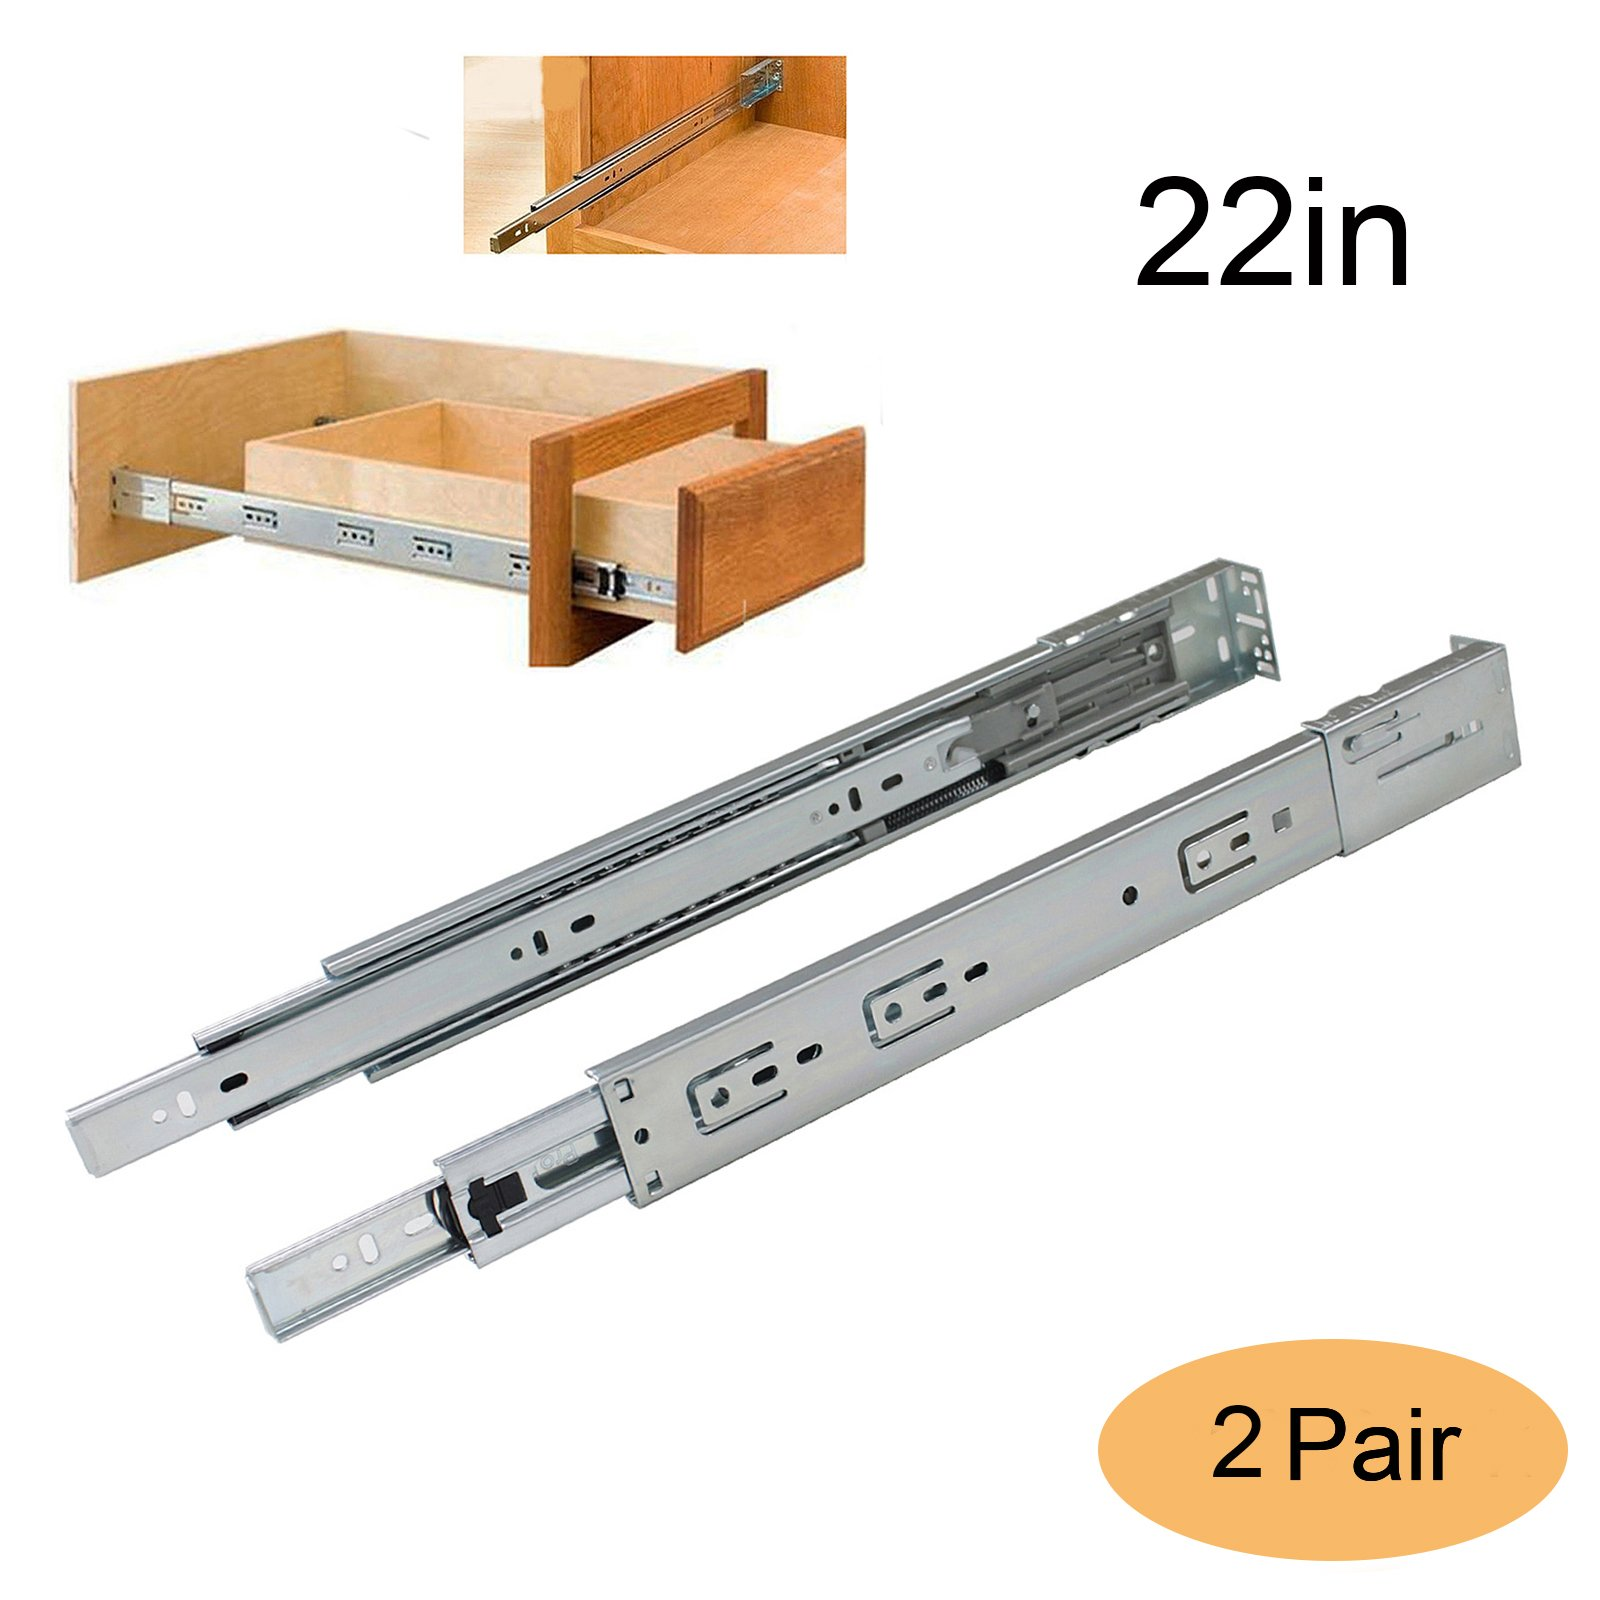 Gobrico 22in 100 LB Capacity Full Extension Soft/Self Close Ball Bearing Rear/Side Mount Drawer Slides with Brackets - 2 Pair Pack